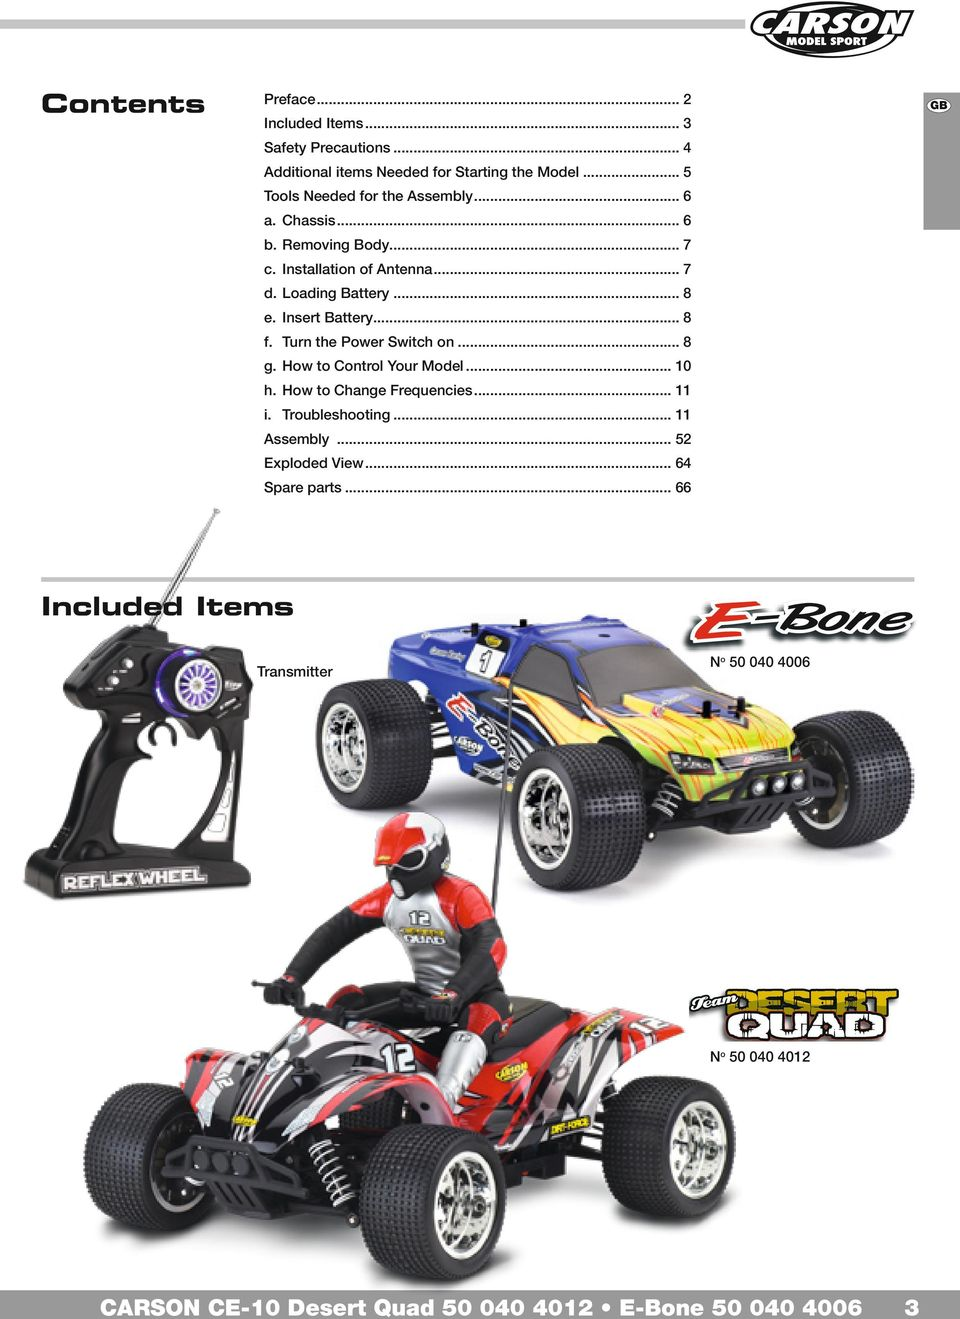 G Instruction Manual Page D Betriebsanleitung Seite F Mode Emploie Rc Cars Remote Control And Radio Controlled From Modelsport Loading Battery 8 E Insert 4 Gb Safety Precautions